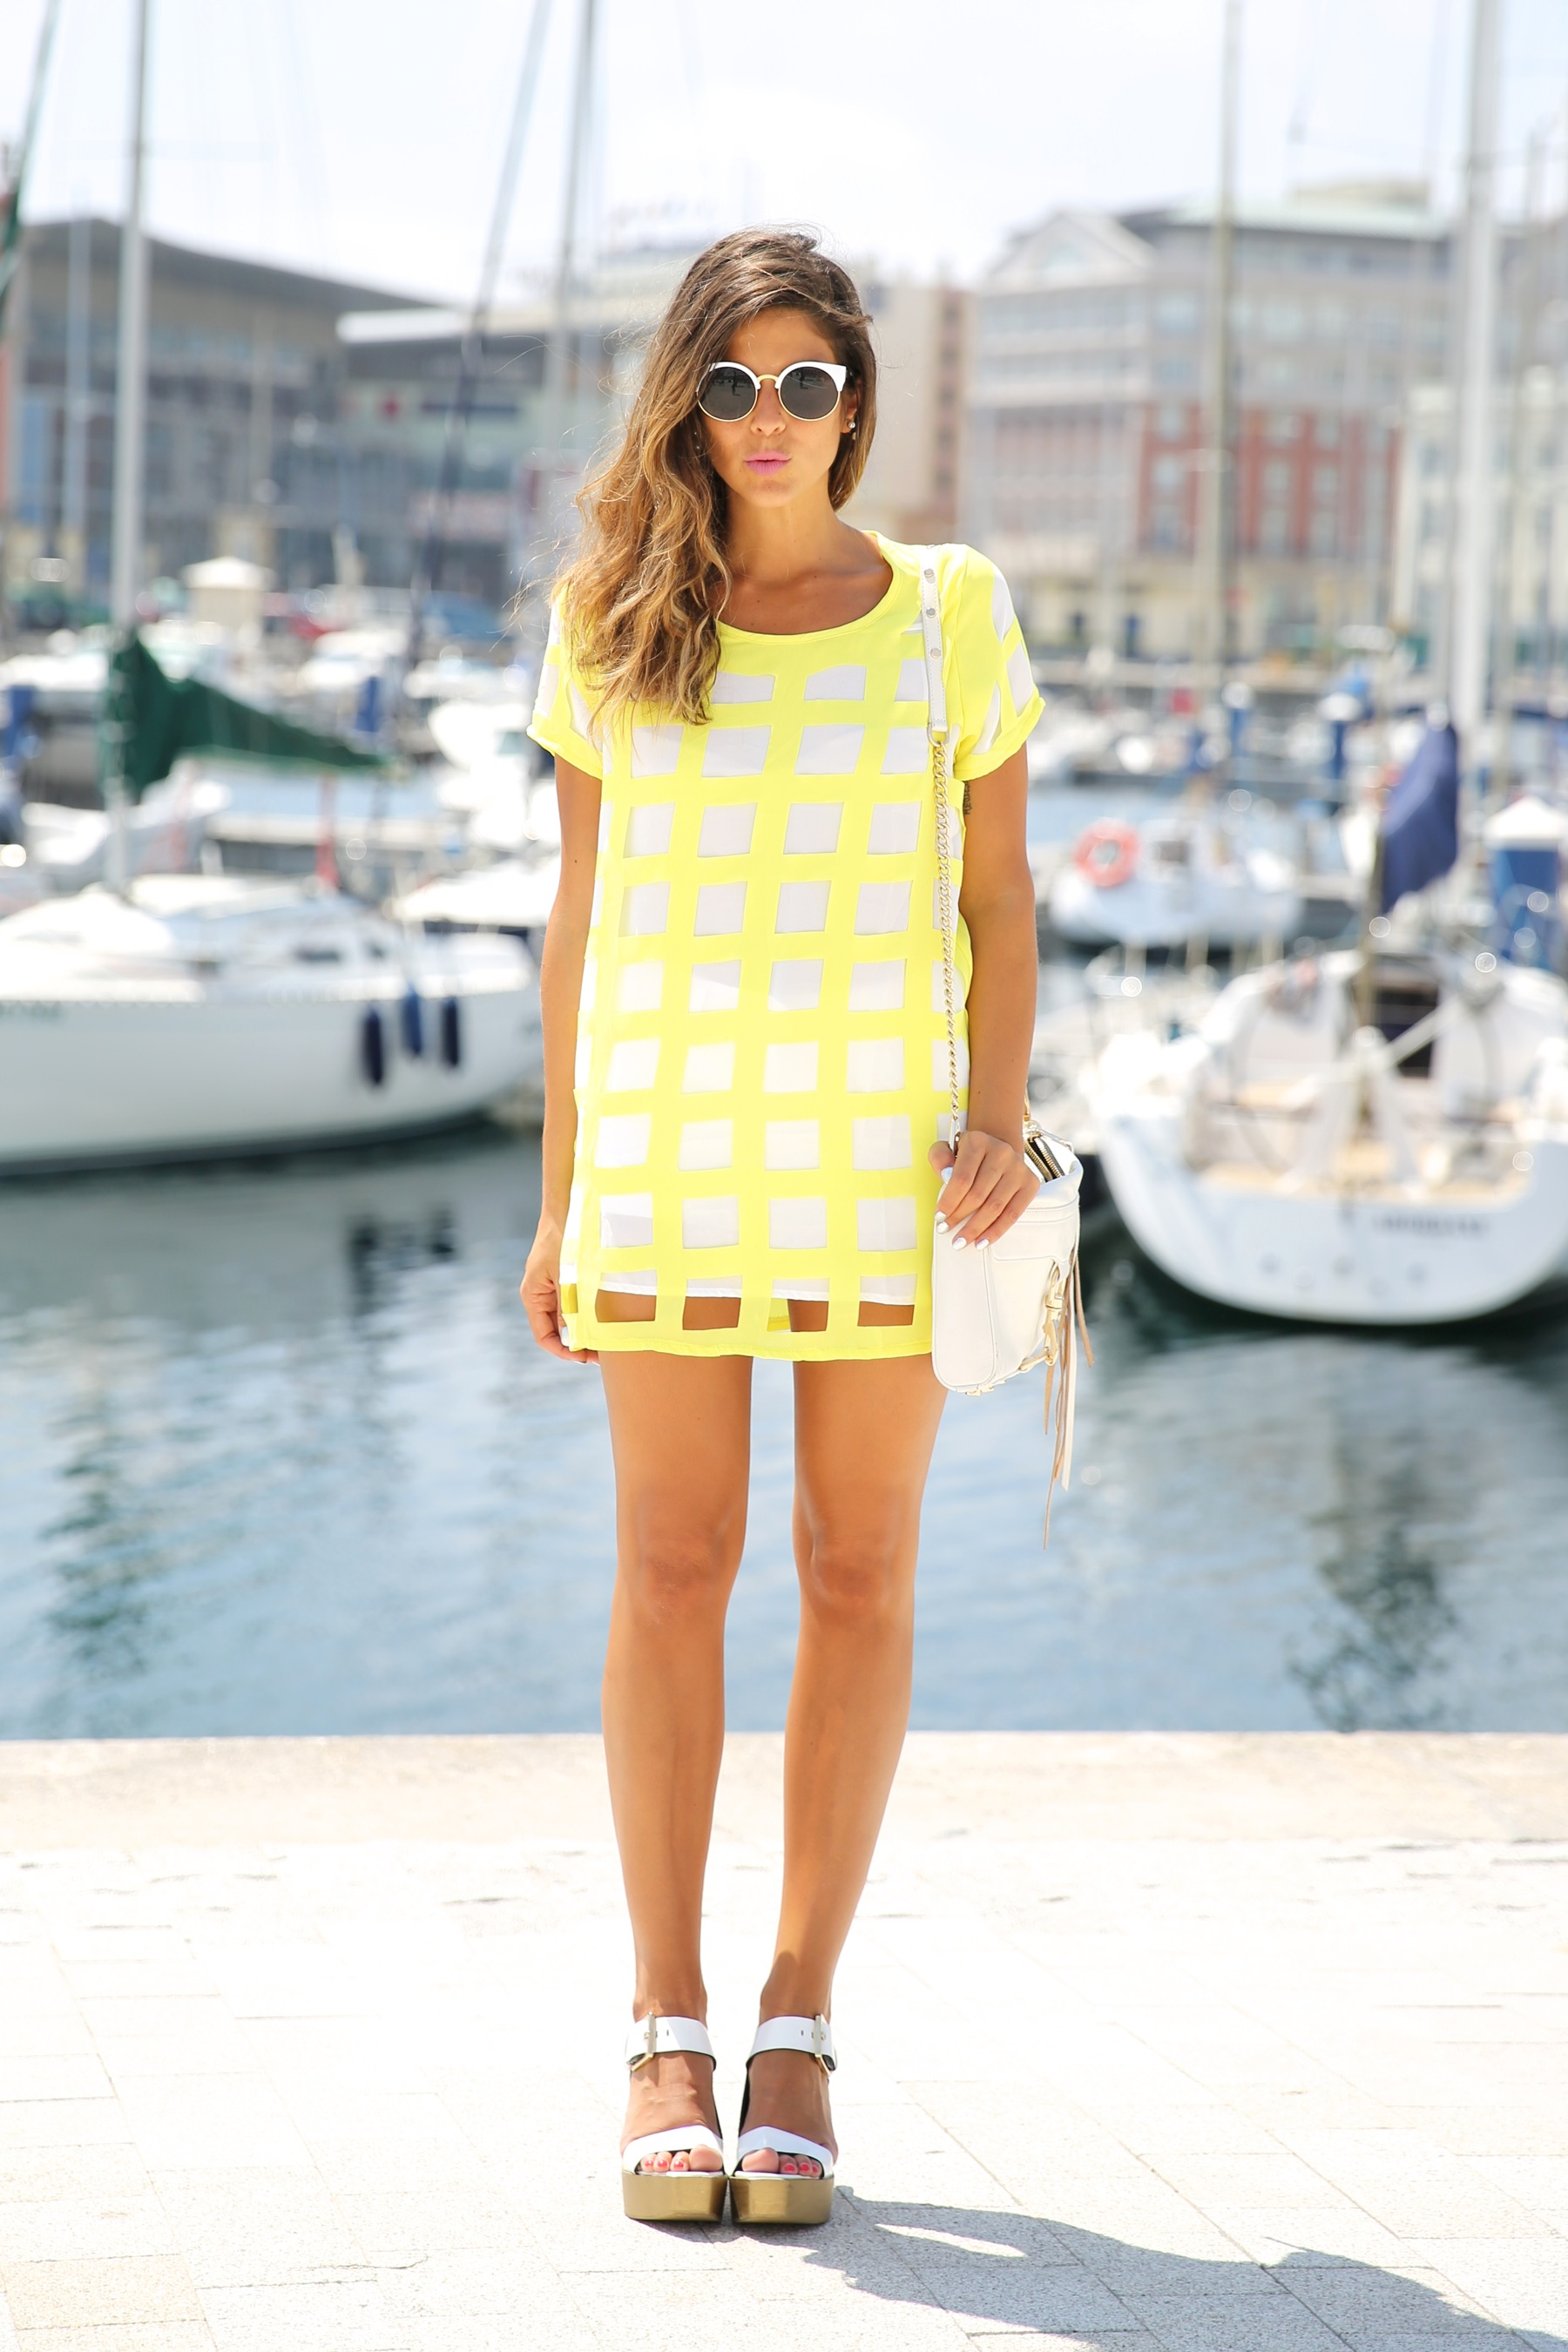 trendy_taste-look-outfit-street_style-ootd-blog-blogger-moda_españa-fashion_spain-coruña-galicia-sandalias_plataforma-platform_sandals-rebecca_minkoff-yellow-amarillo-vestido-dress-plaid-cuadros-8